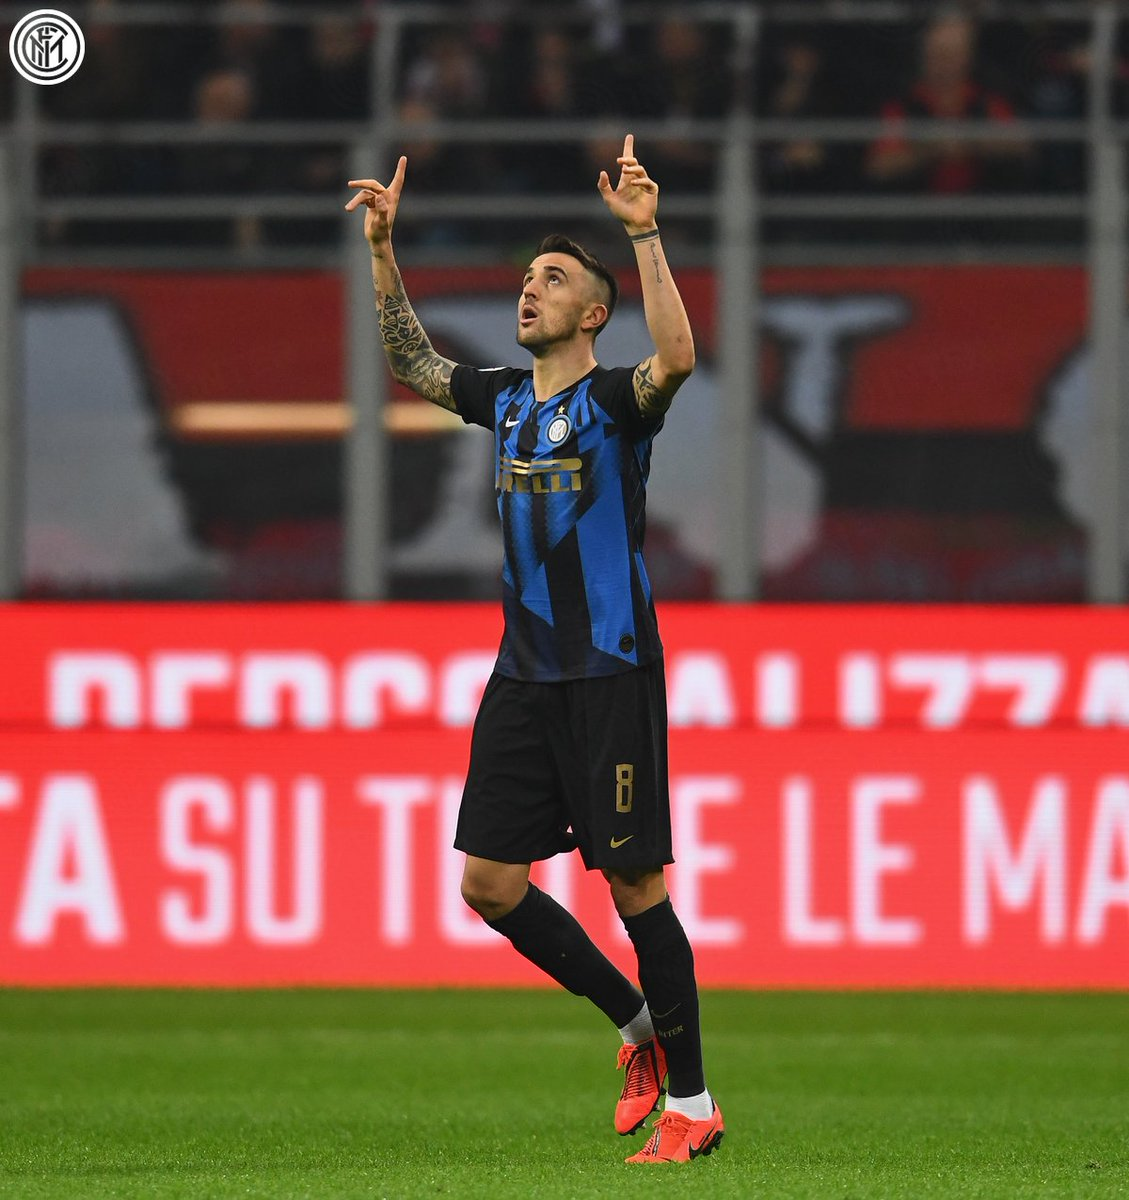 Time for the 🙌 and then the bundle  🖤💙  #DerbyMilano #MilanInter 0-1